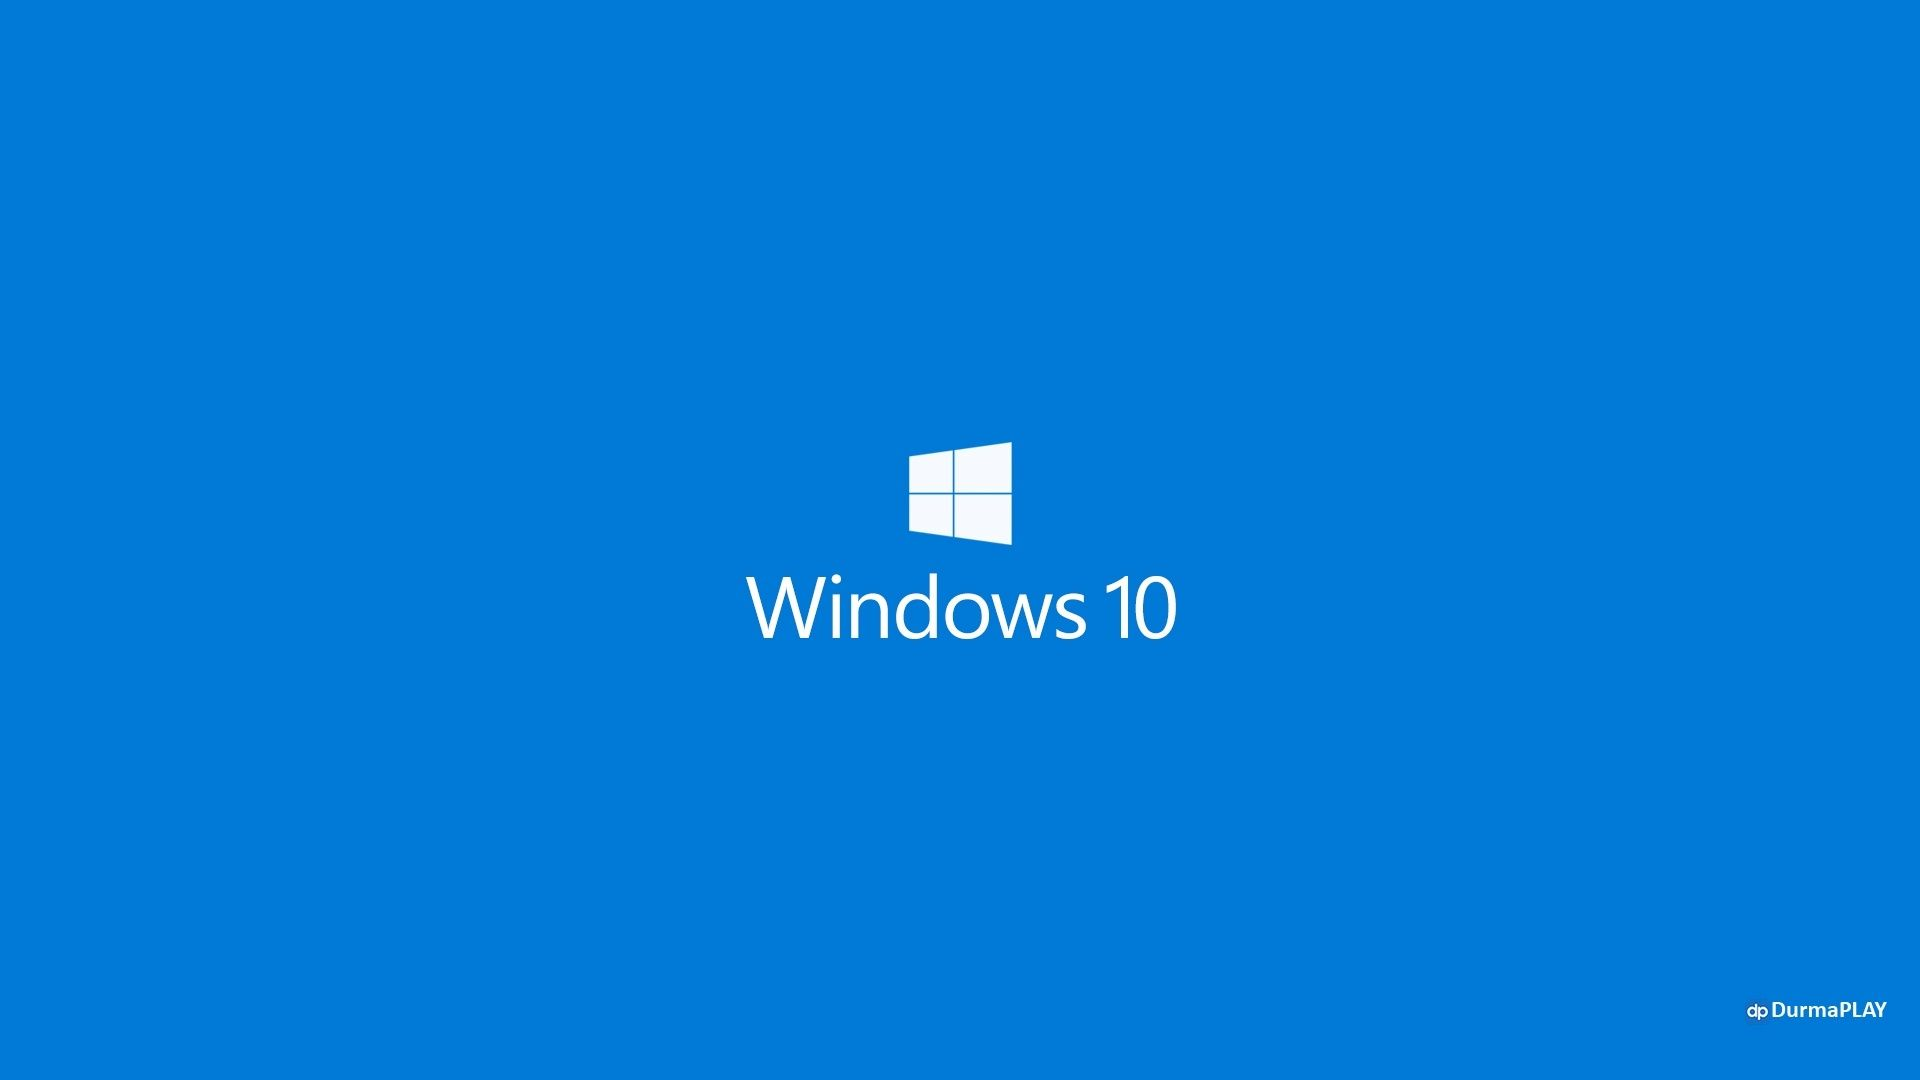 Windows 10 Pro Wallpapers Top Free Windows 10 Pro Backgrounds